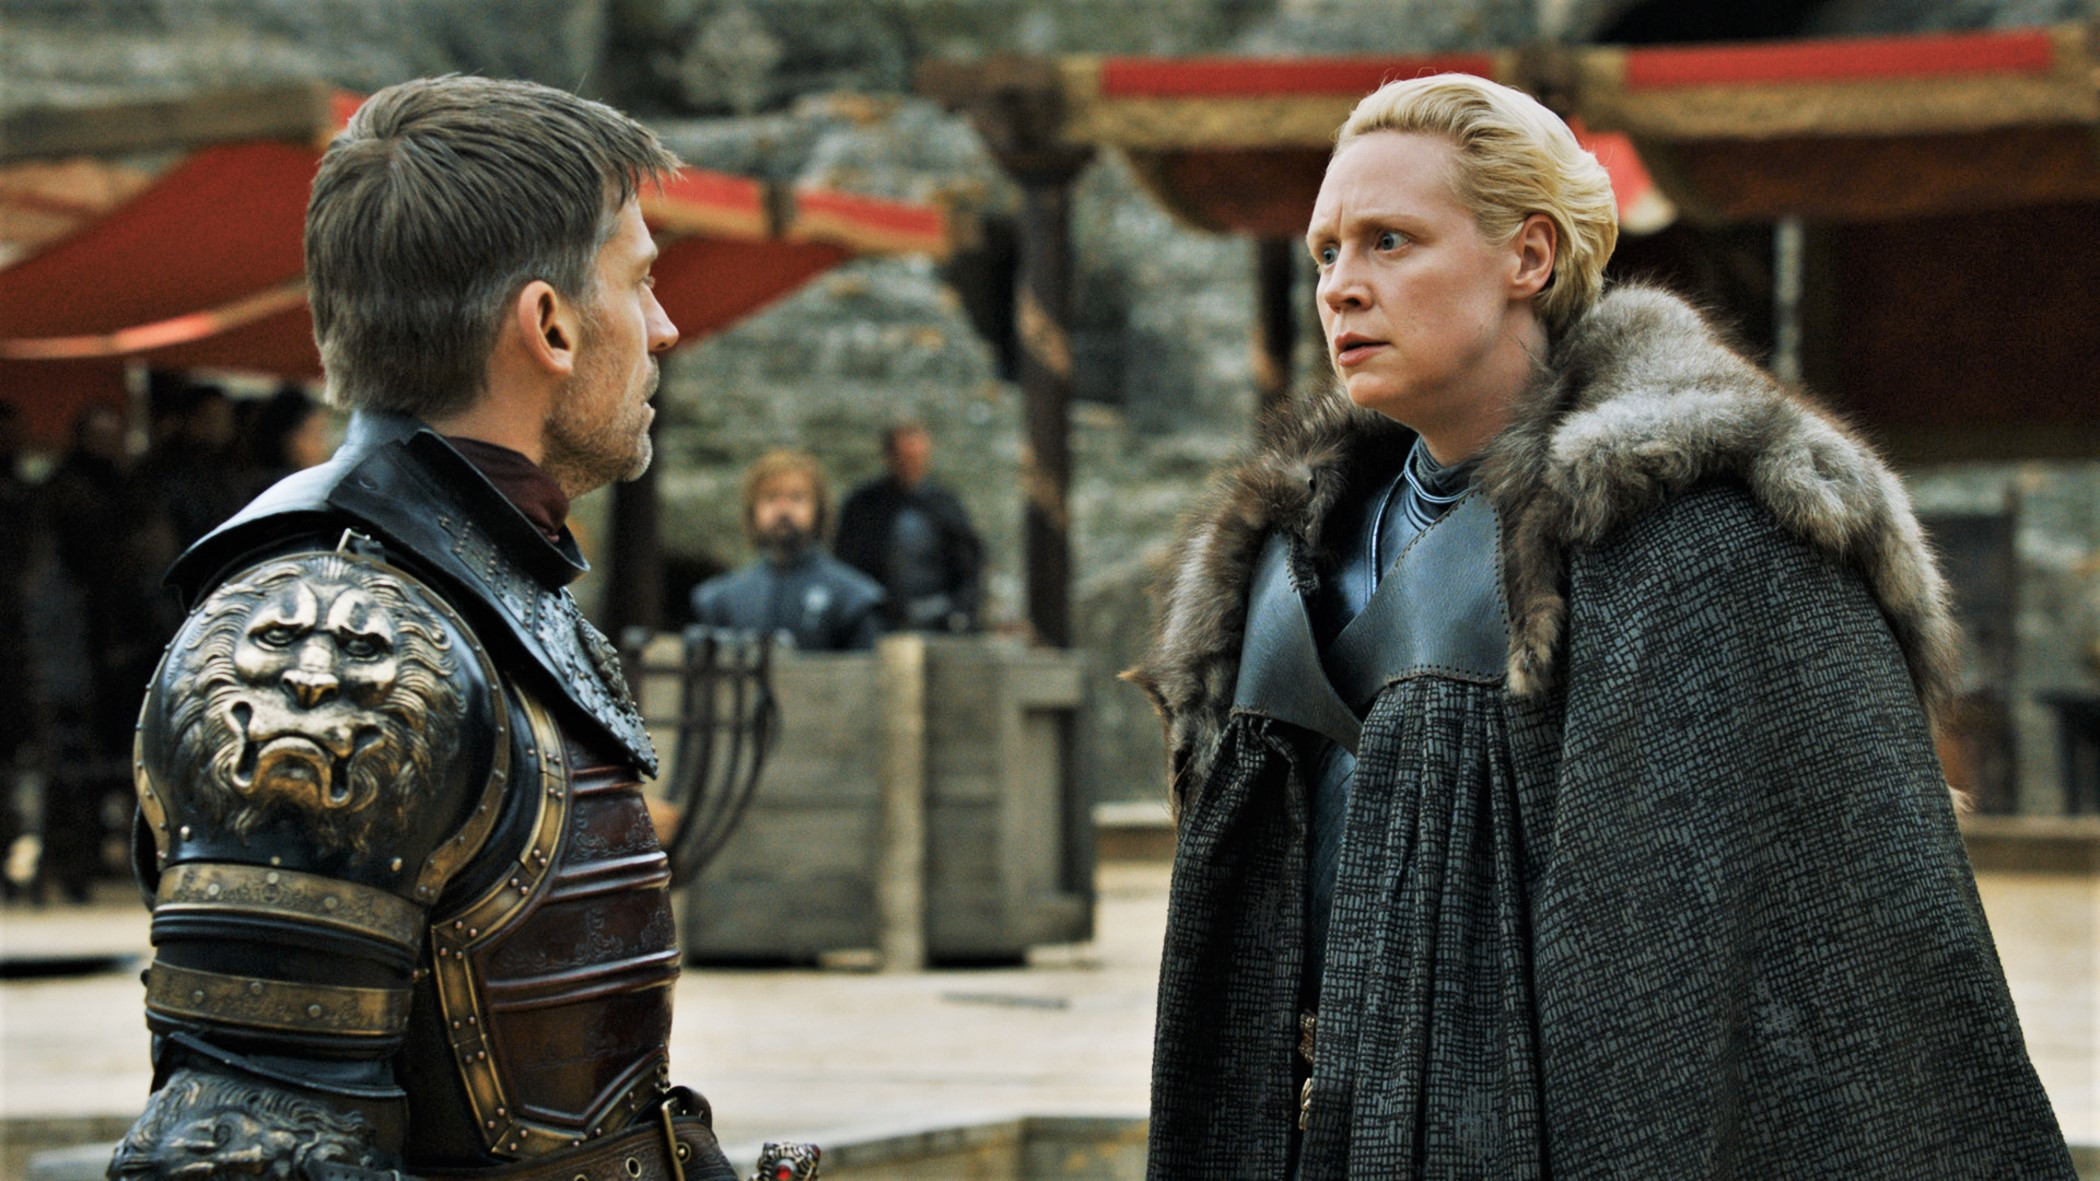 Brienne of Tarth doesn't have time for laughs on-screen, but off is different.